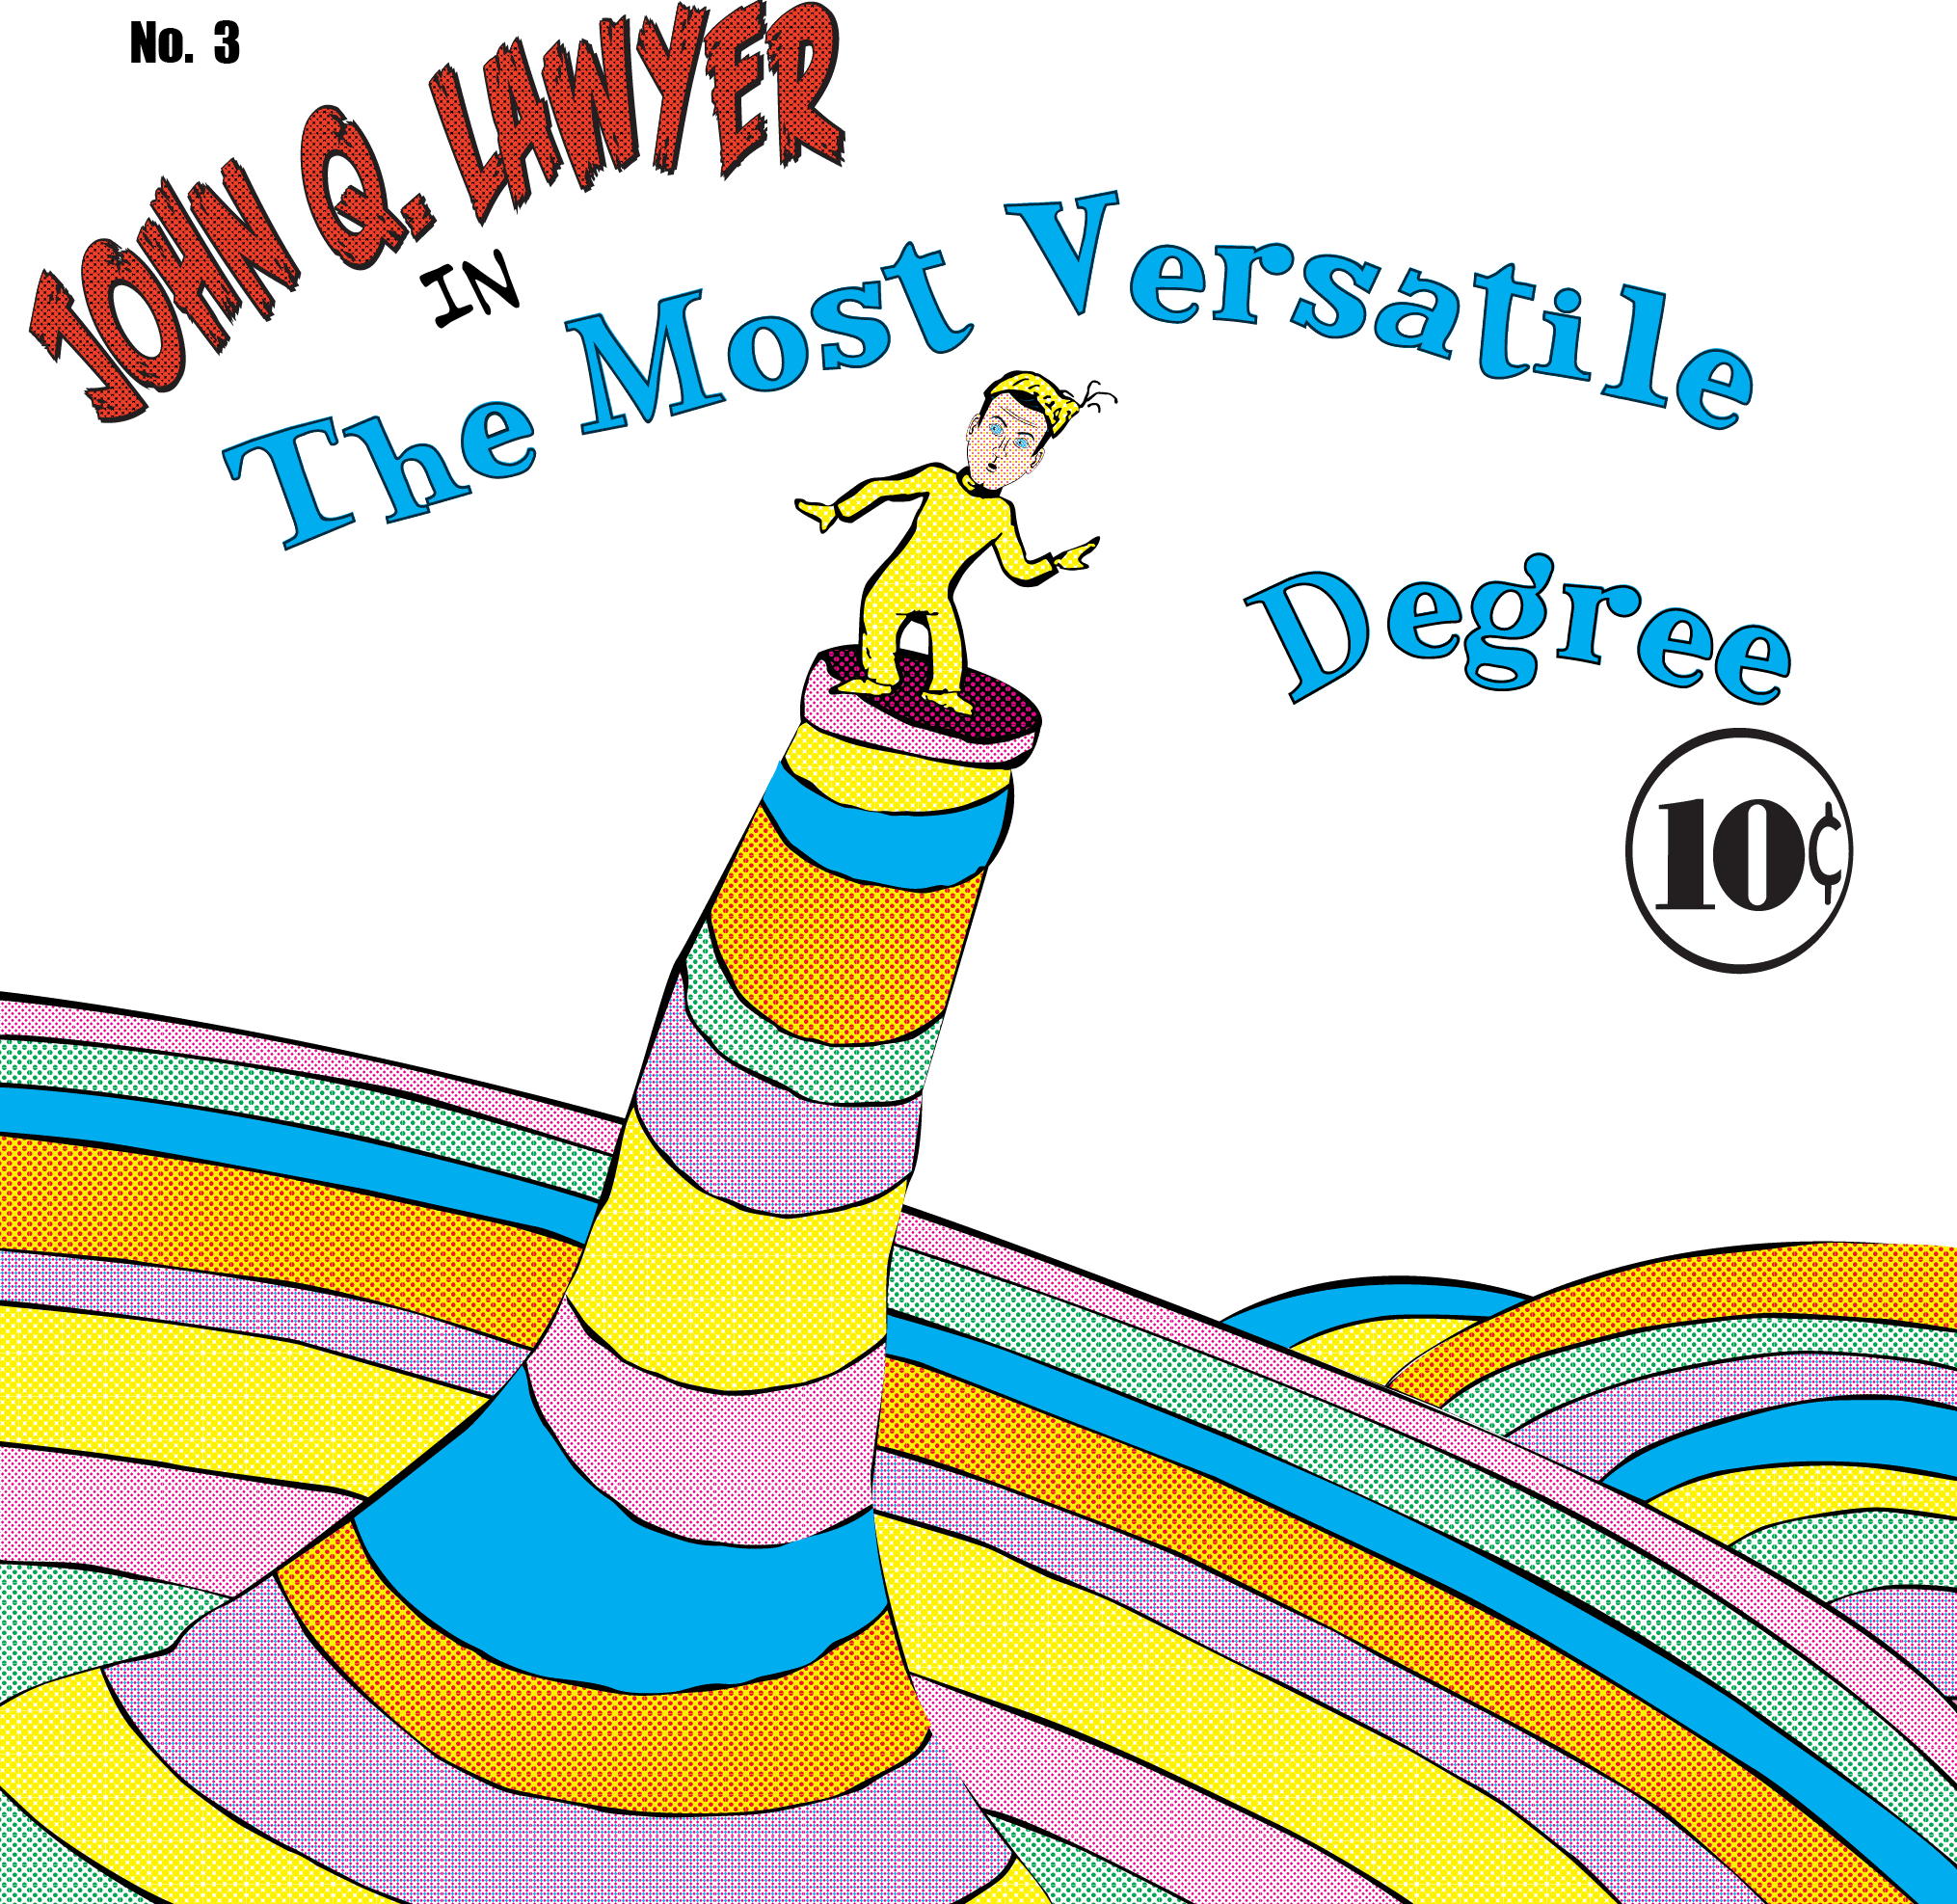 The Most Versatile Degree